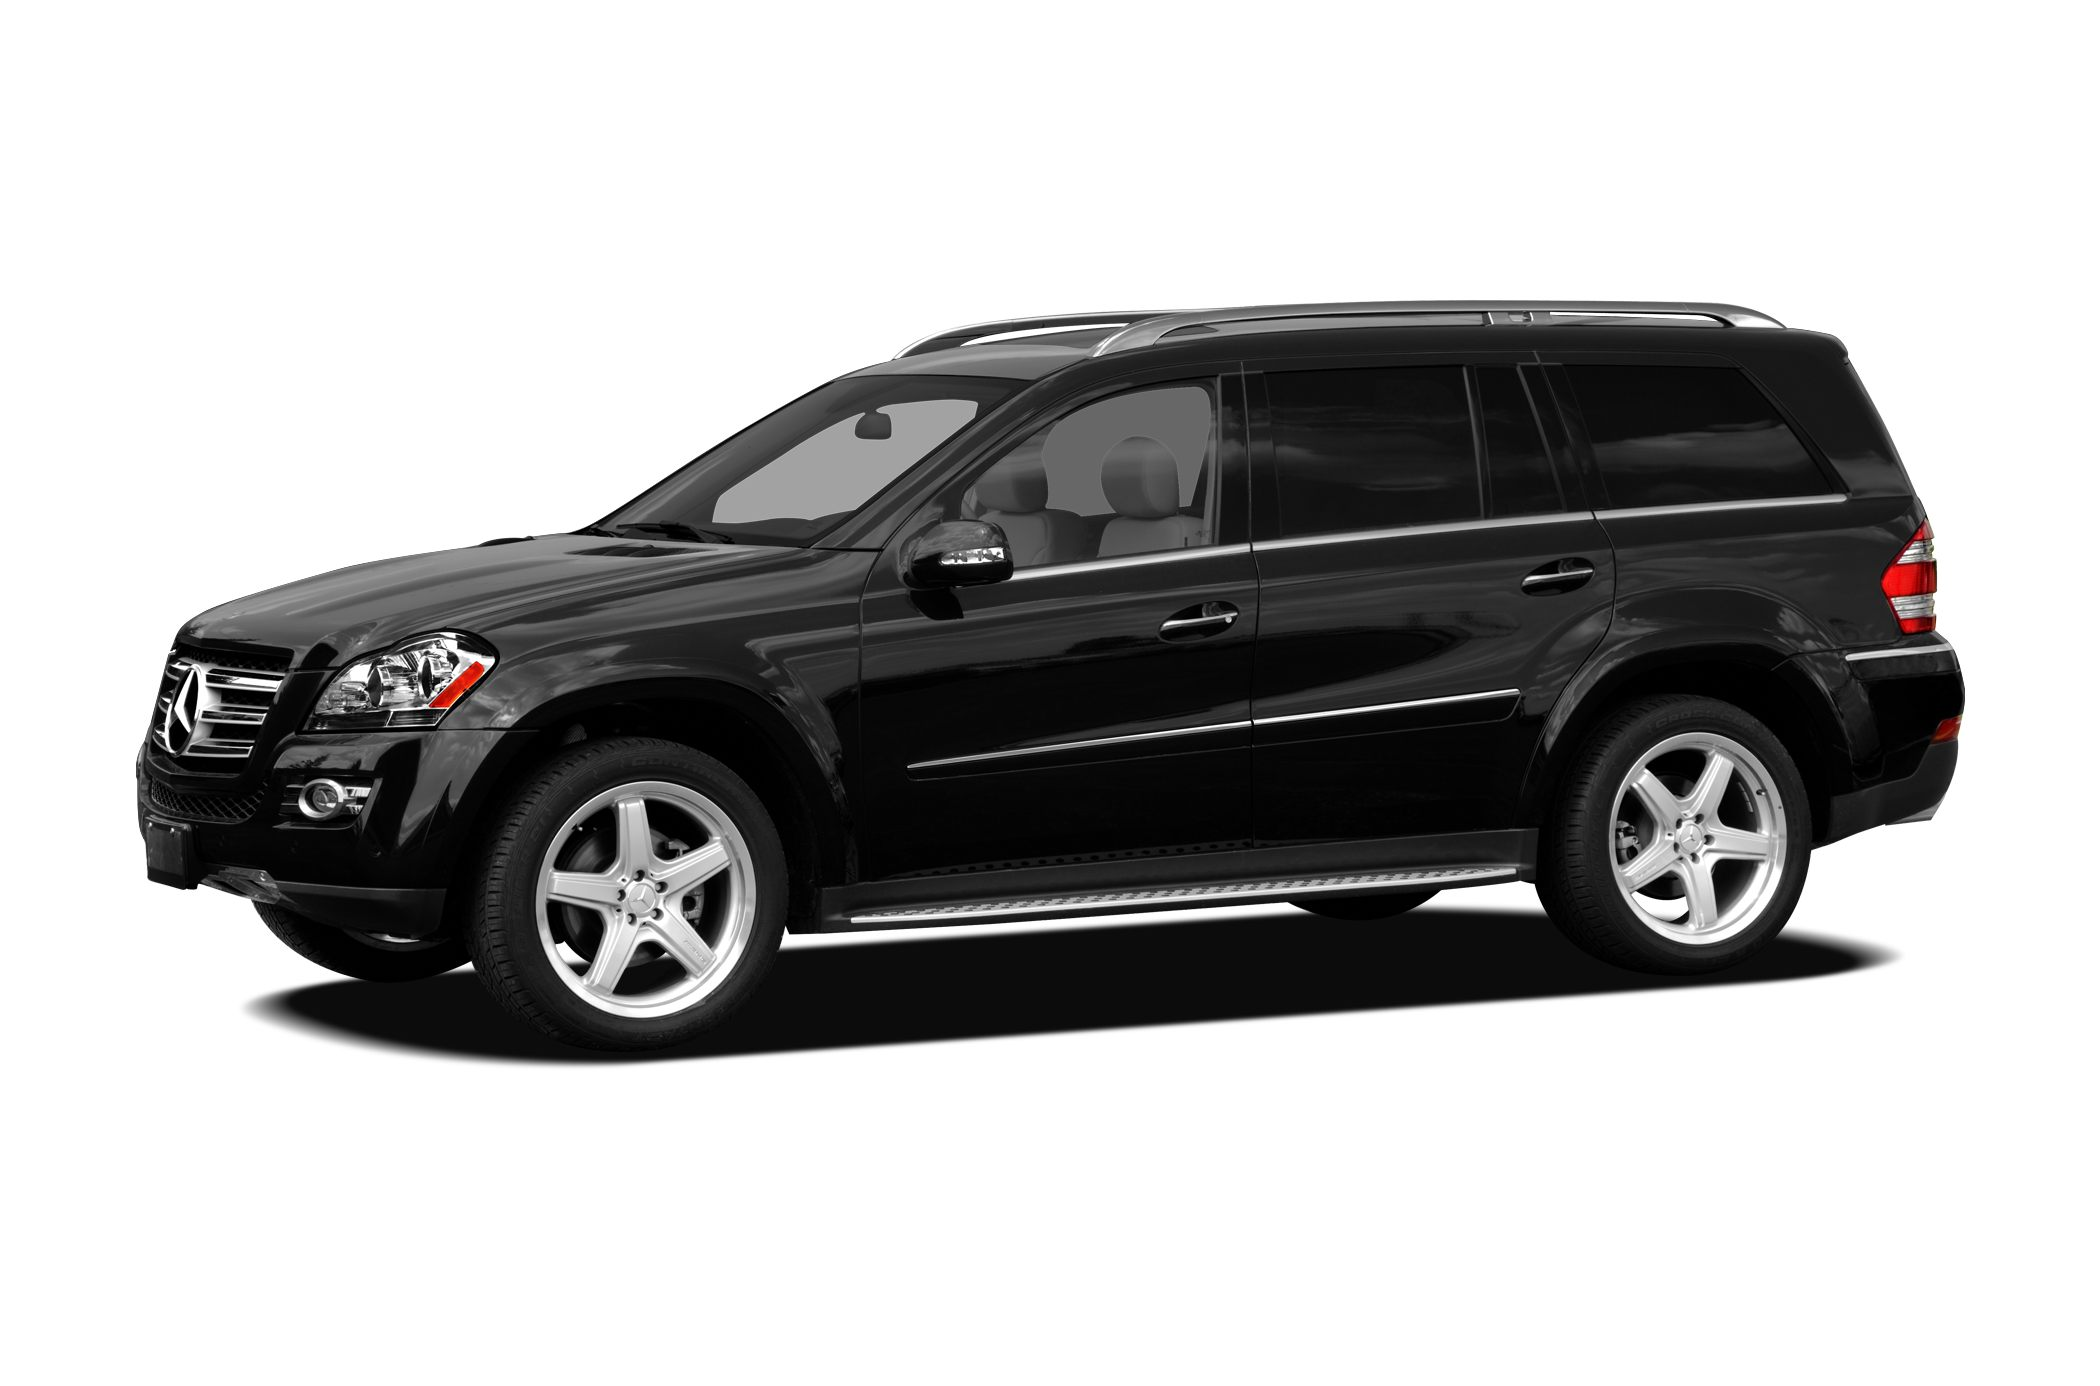 2008 Mercedes-Benz GL-Class GL550 4MATIC SUV for sale in Pasadena for $25,999 with 61,064 miles.